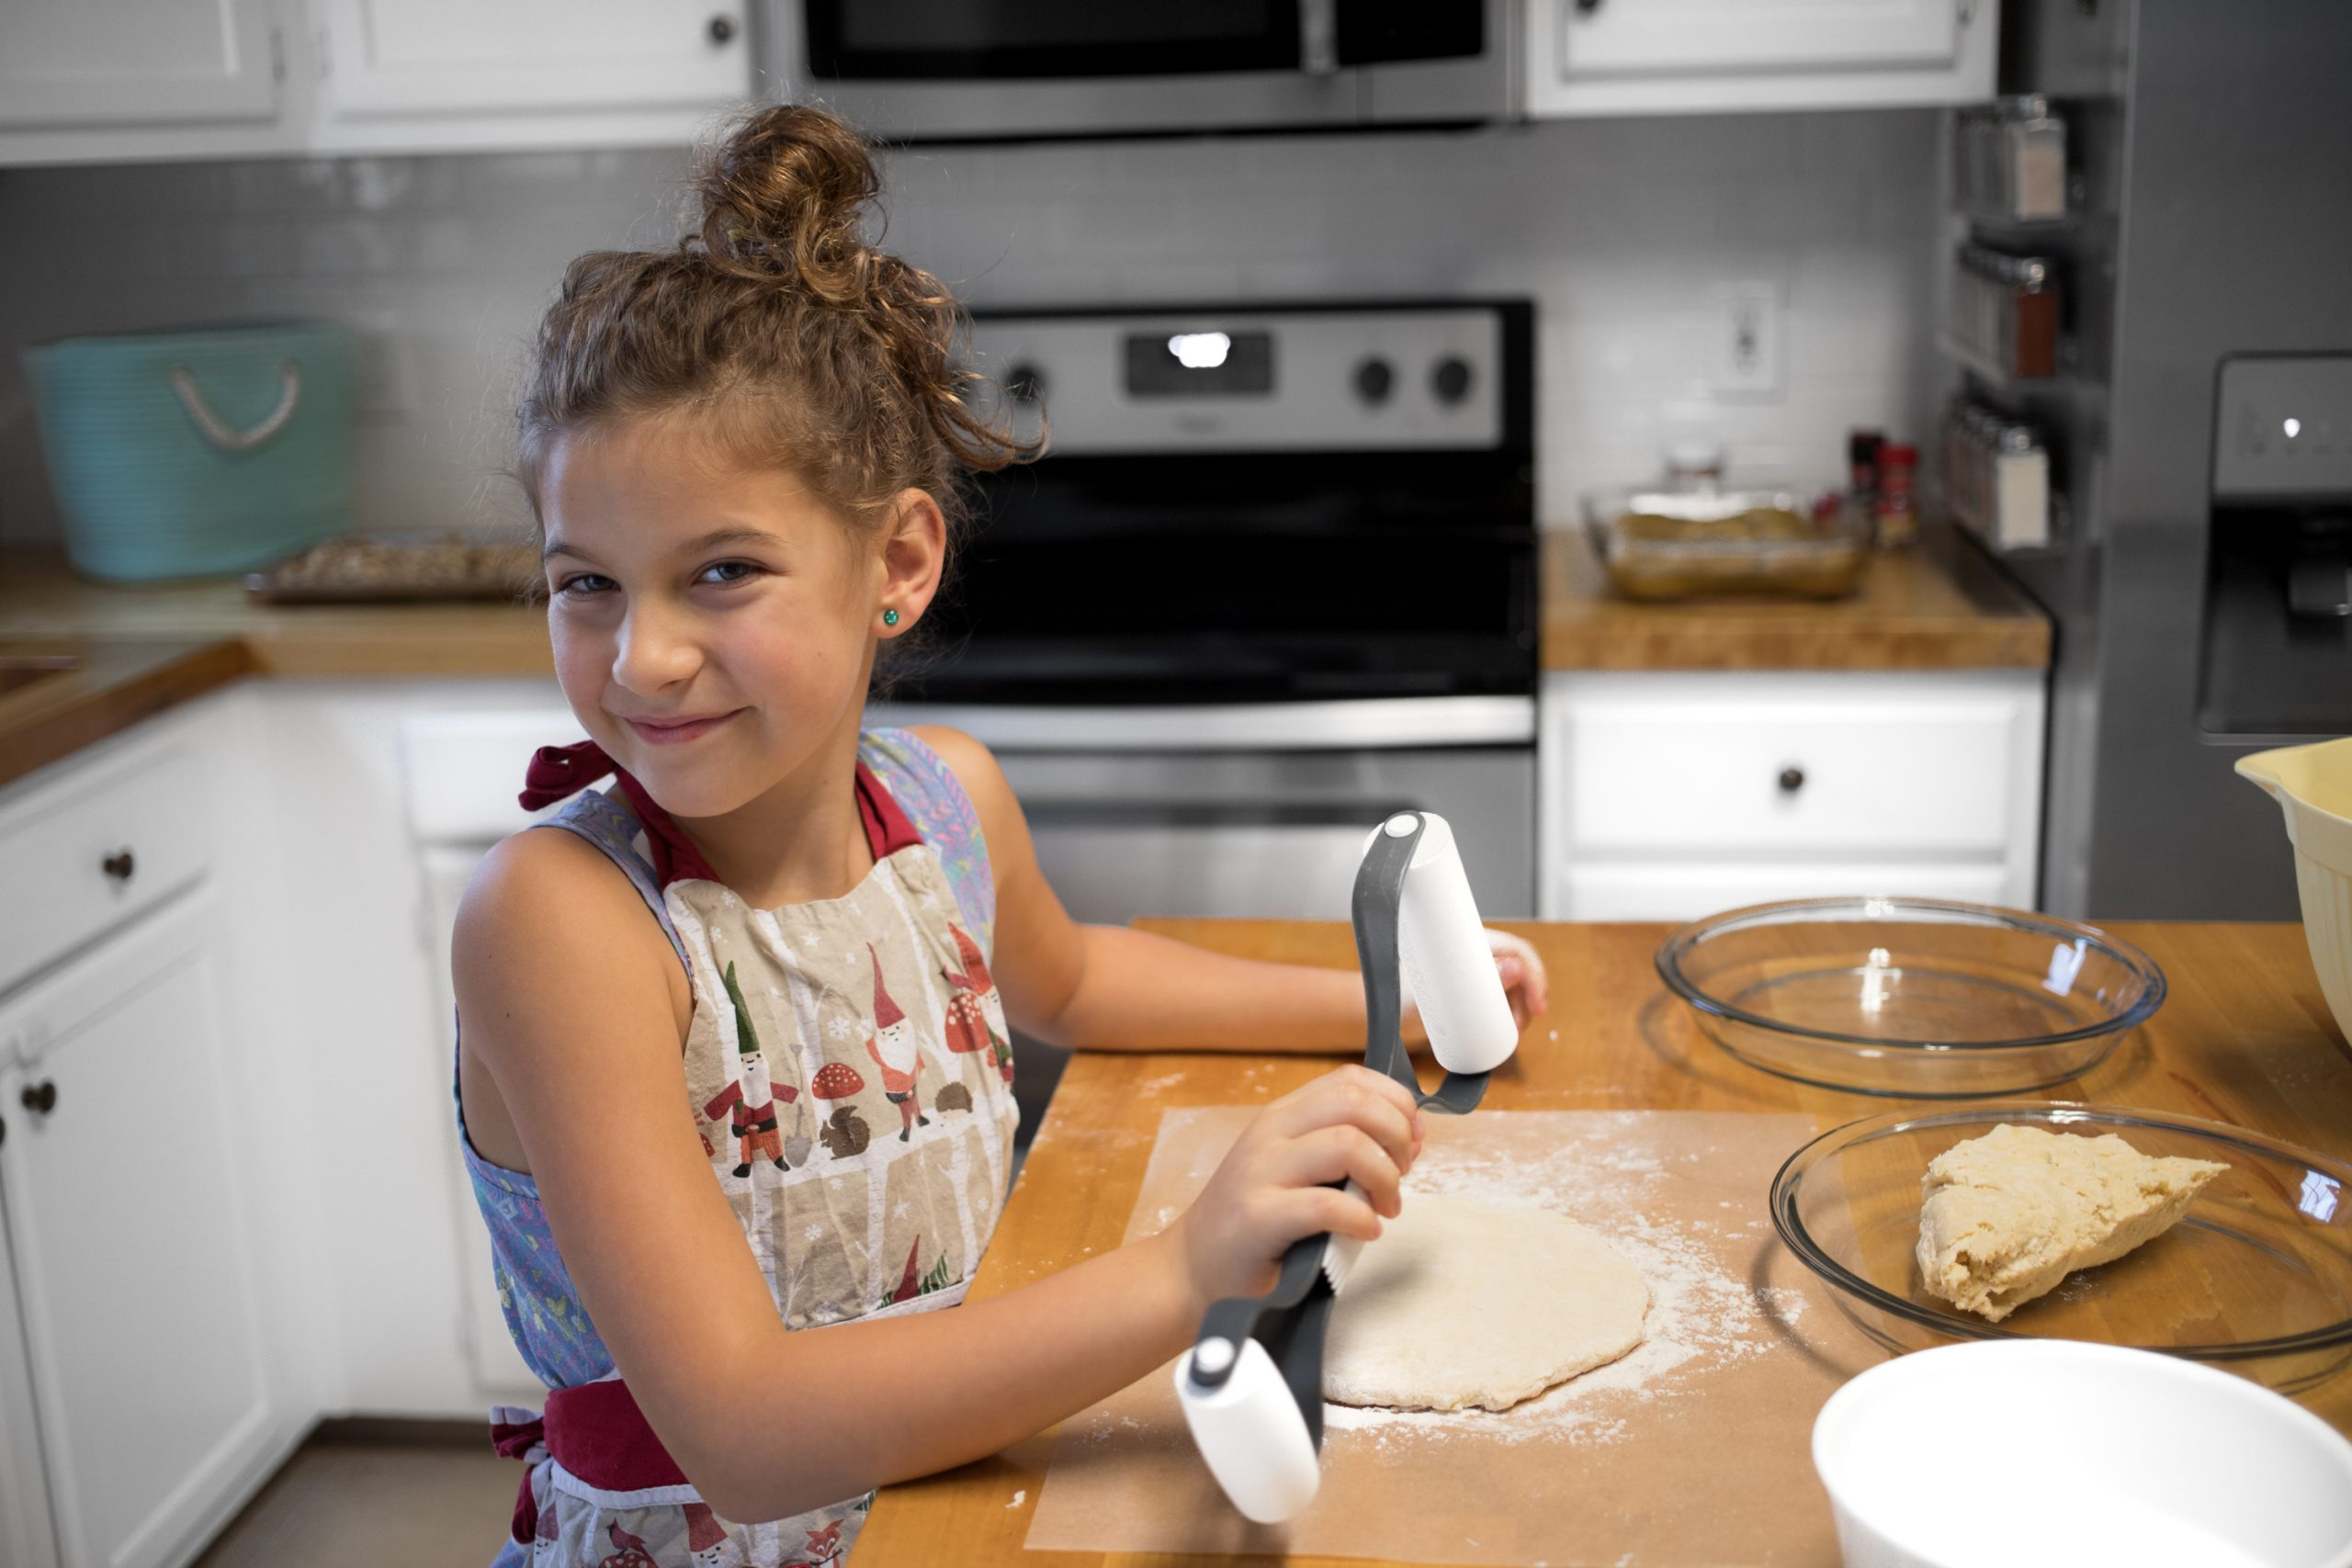 child in an apron rolling dough on butcher block kitchen counters